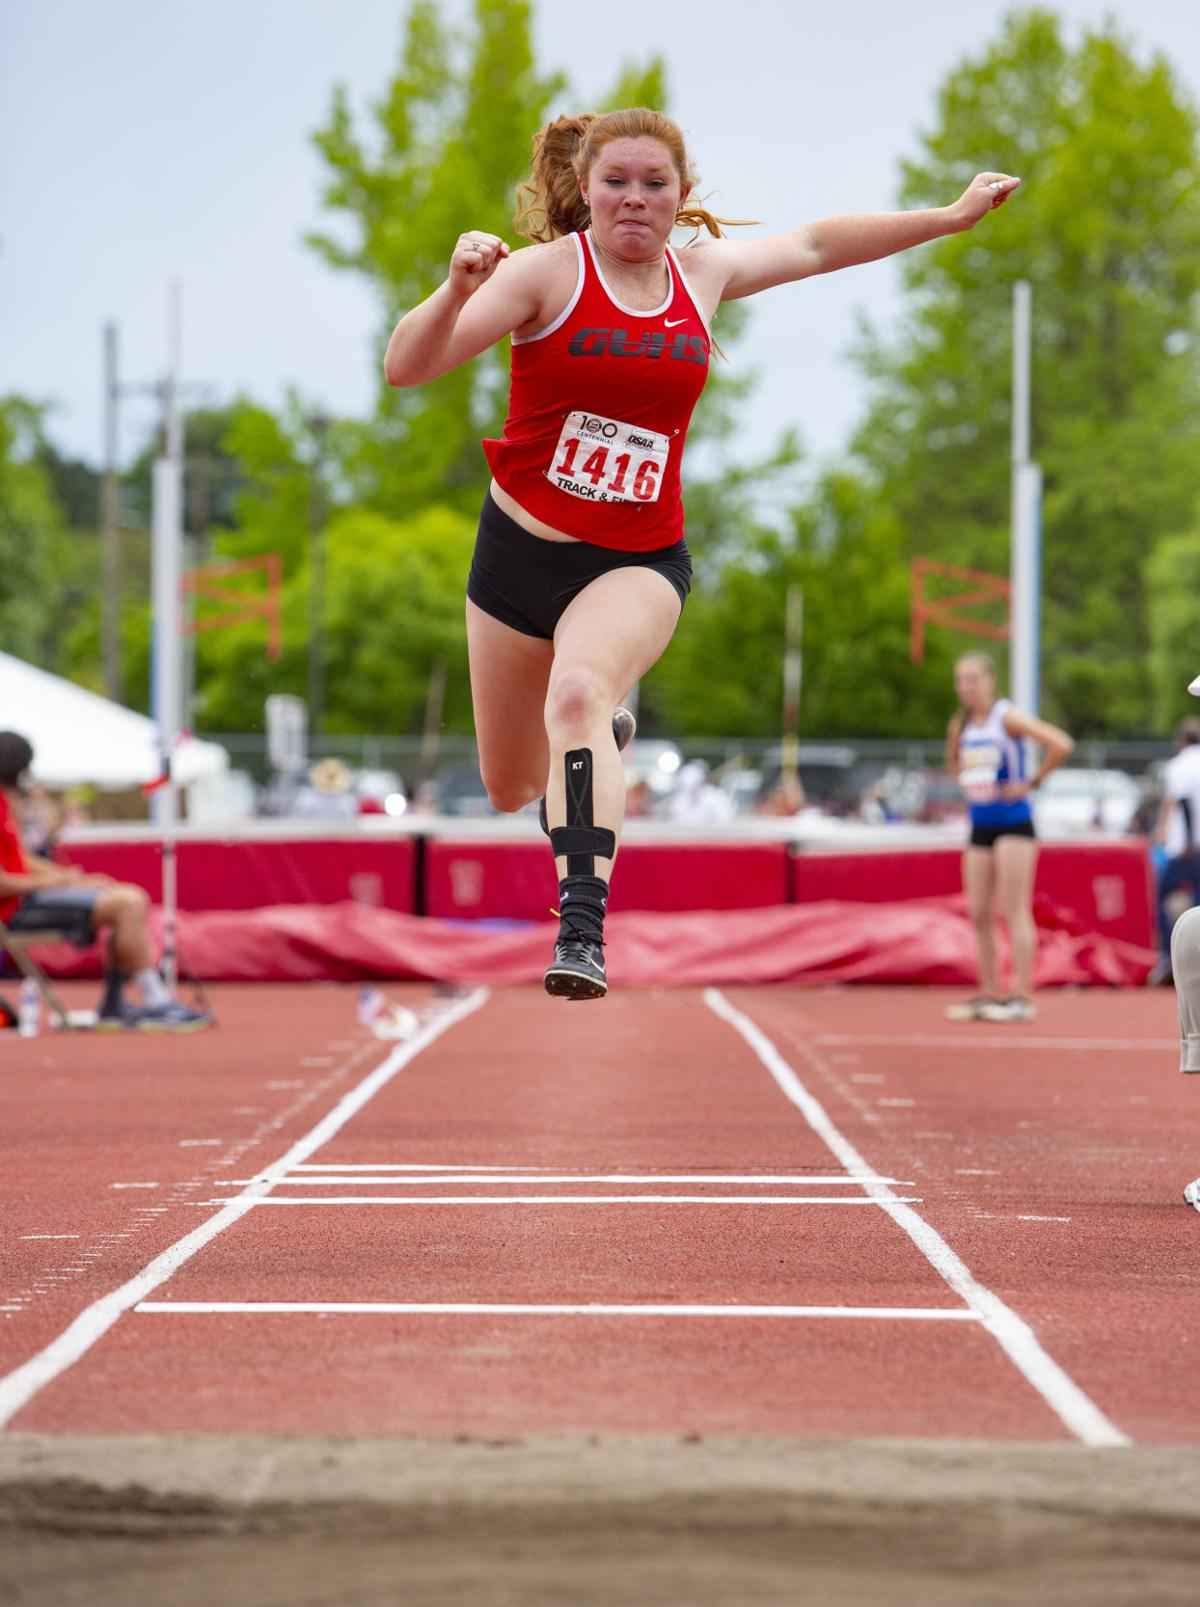 Grant Union Track and Field